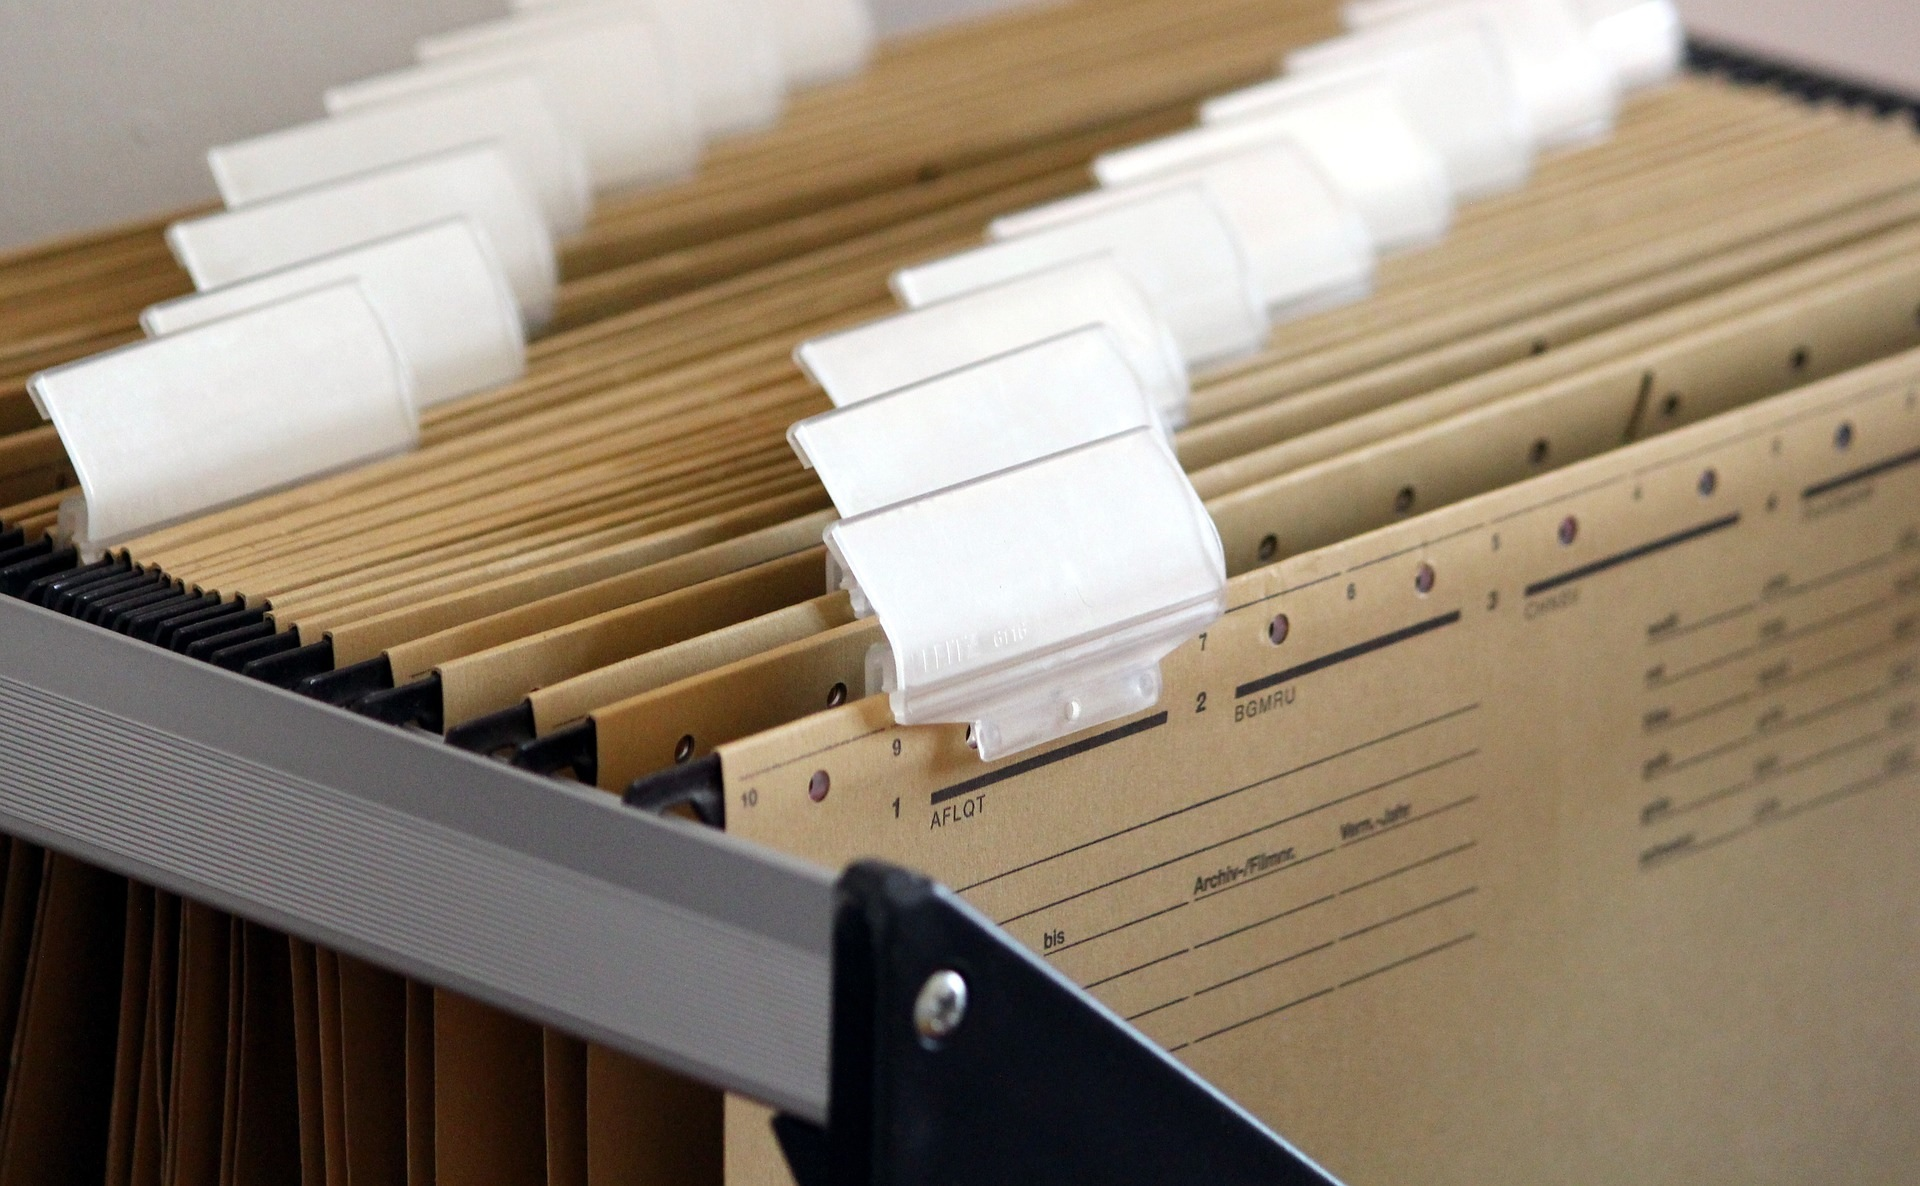 Top 5 Issues of Contract Management